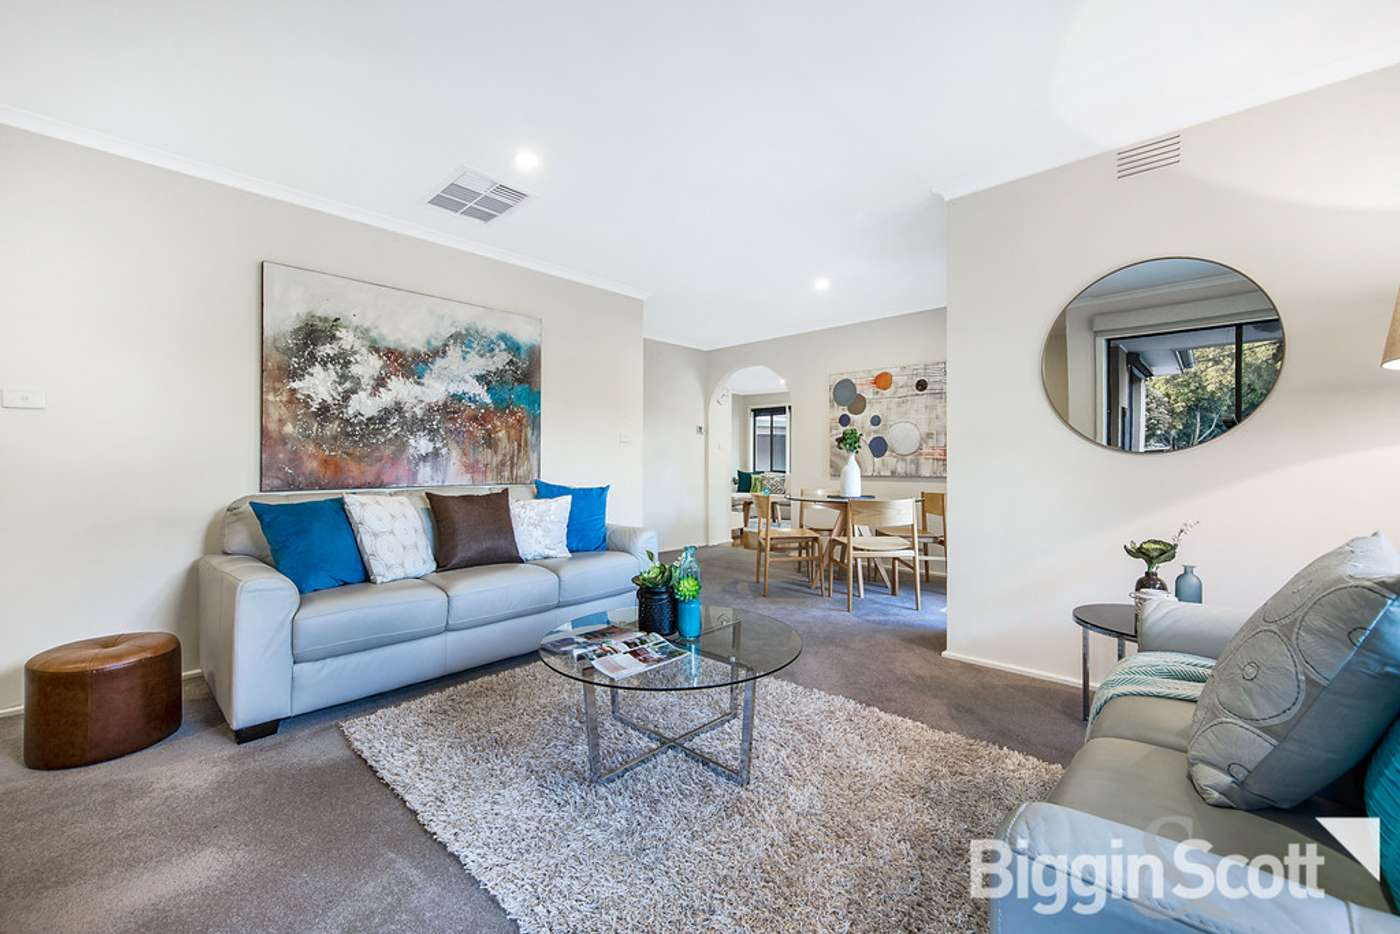 Fifth view of Homely house listing, 90 Tiverton Drive, Mulgrave VIC 3170